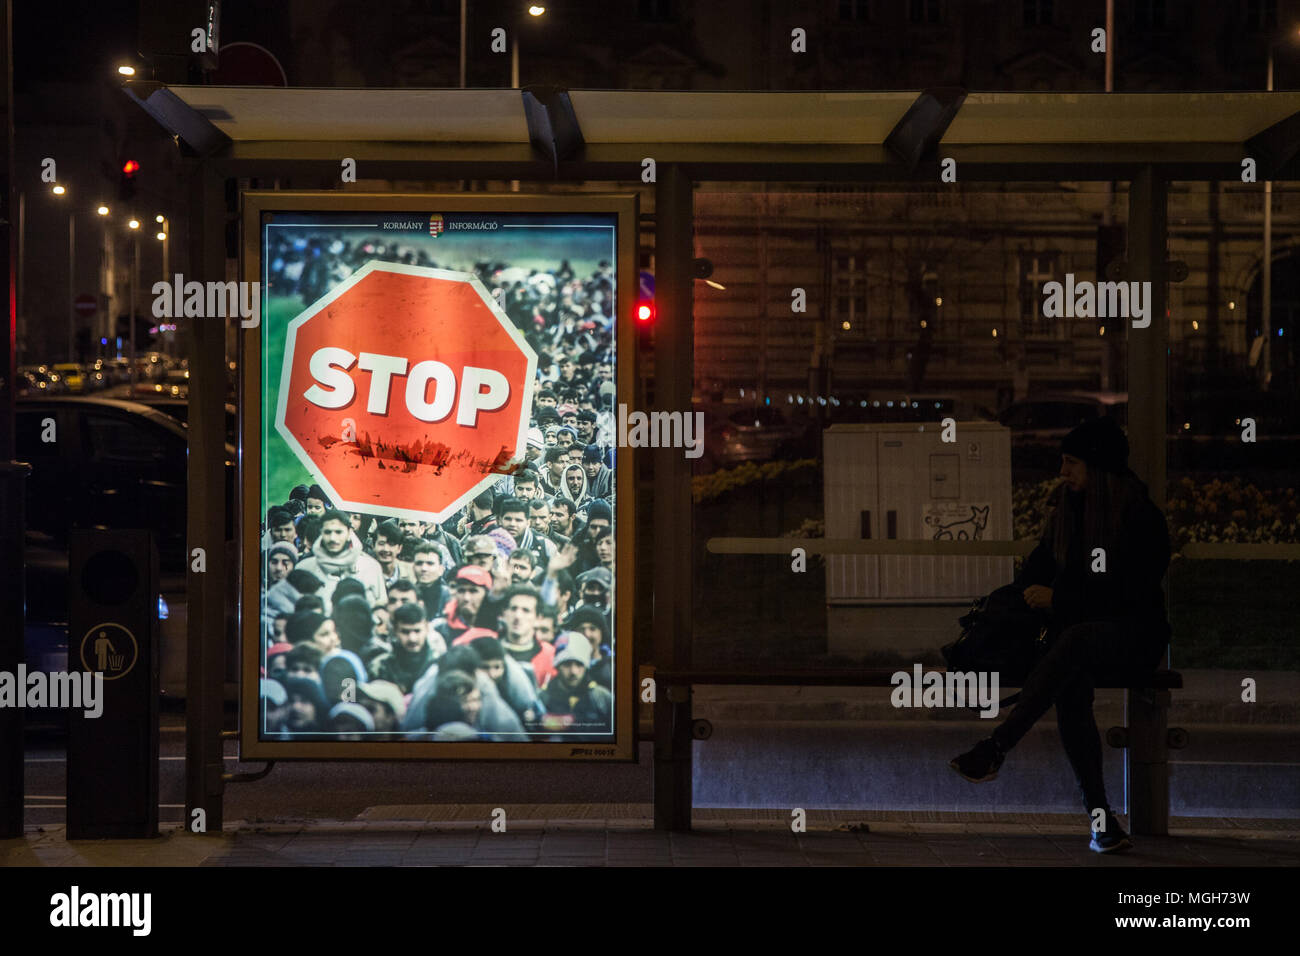 BUDAPEST, HUNGARY - APRIL 7, 2017: Anti Immigration poster from Viktor Orban government in the streets of Budapest during the 2018 general elections c - Stock Image